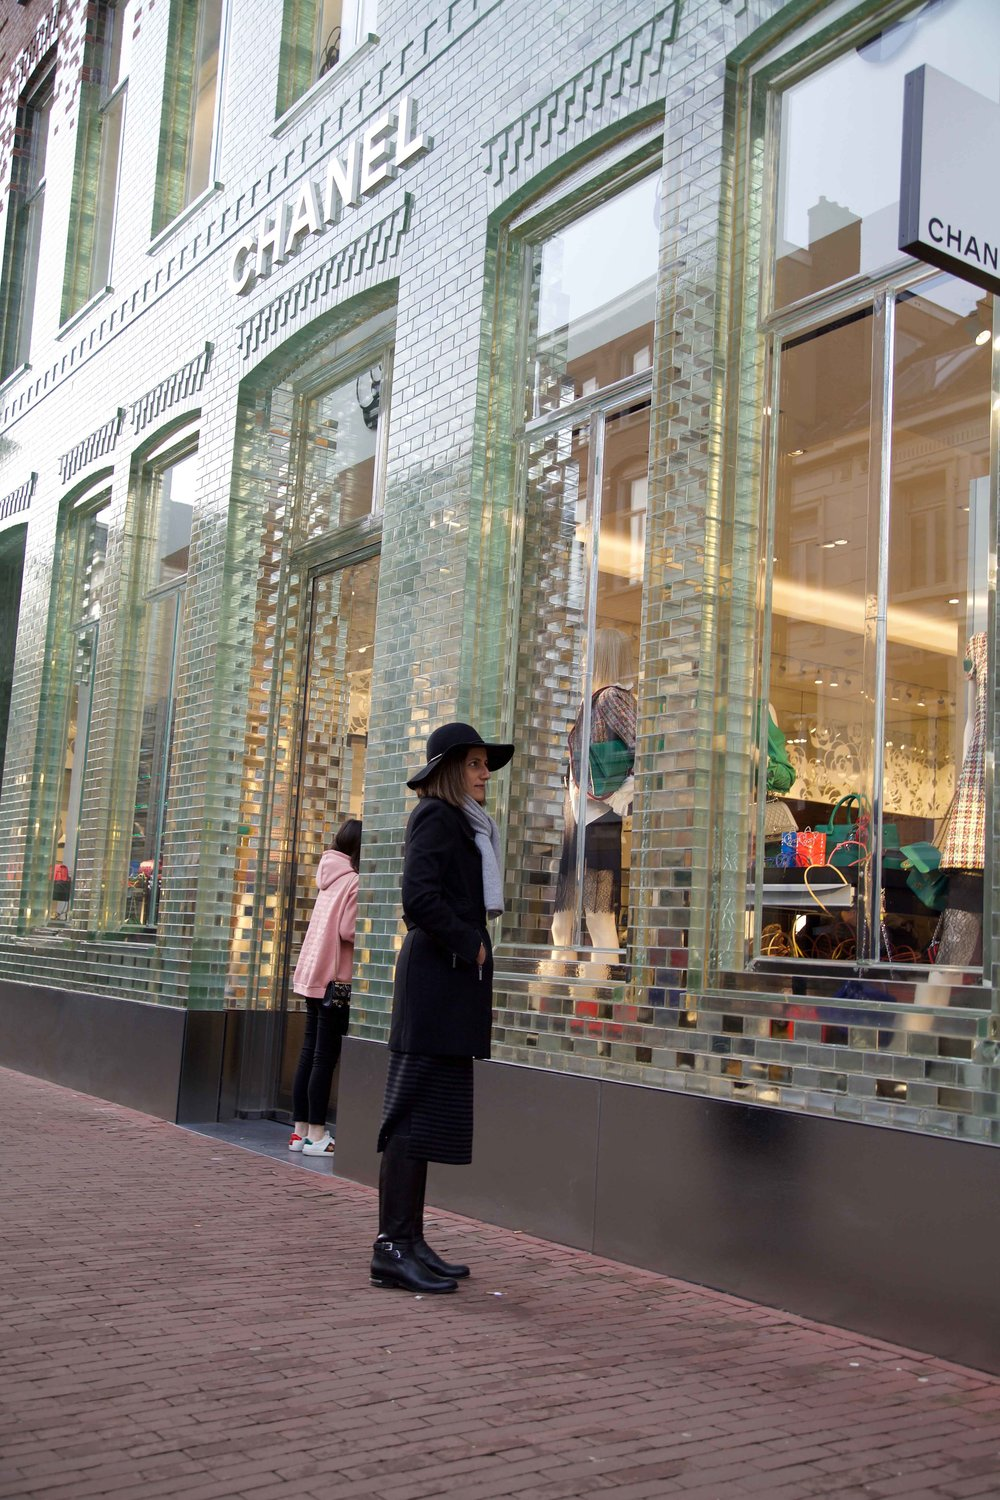 Chanel, Amsterdam. Photo: Fabio Ricci. Image©thingstodot.com